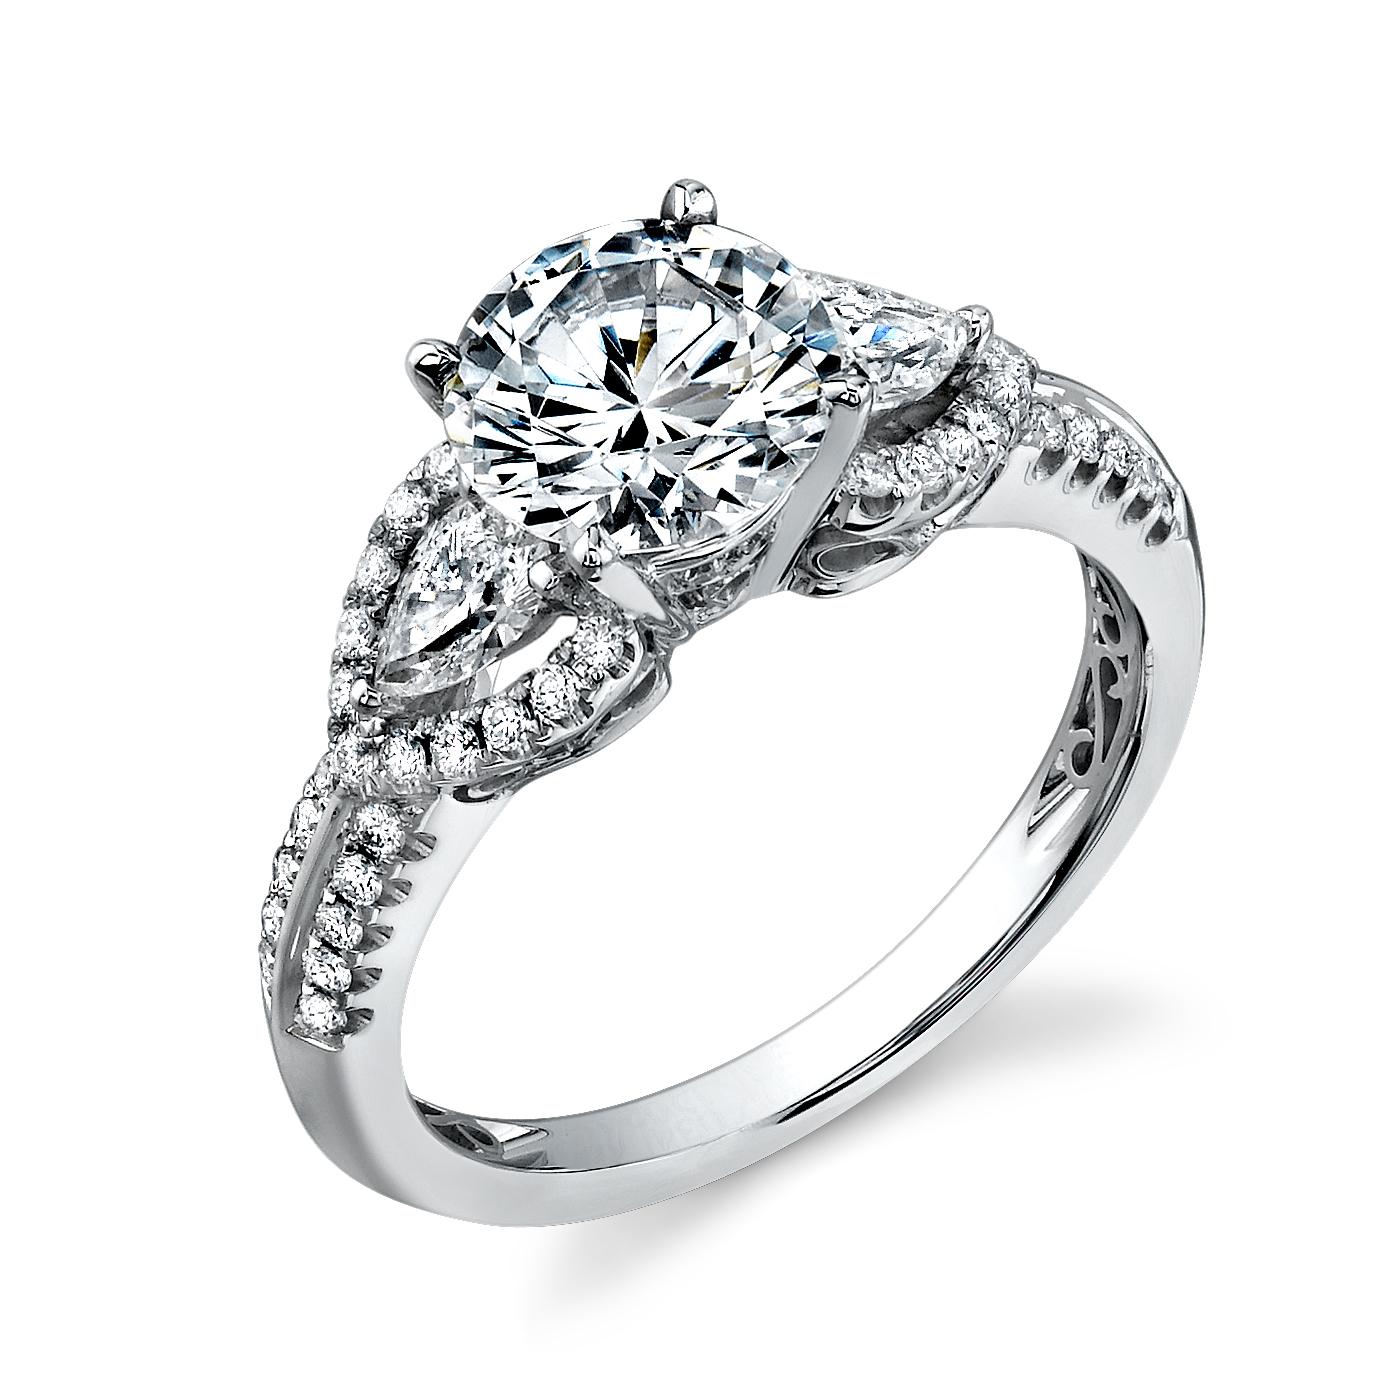 Outstanding Ugly Wedding Rings 17 Almost Inspiration Design